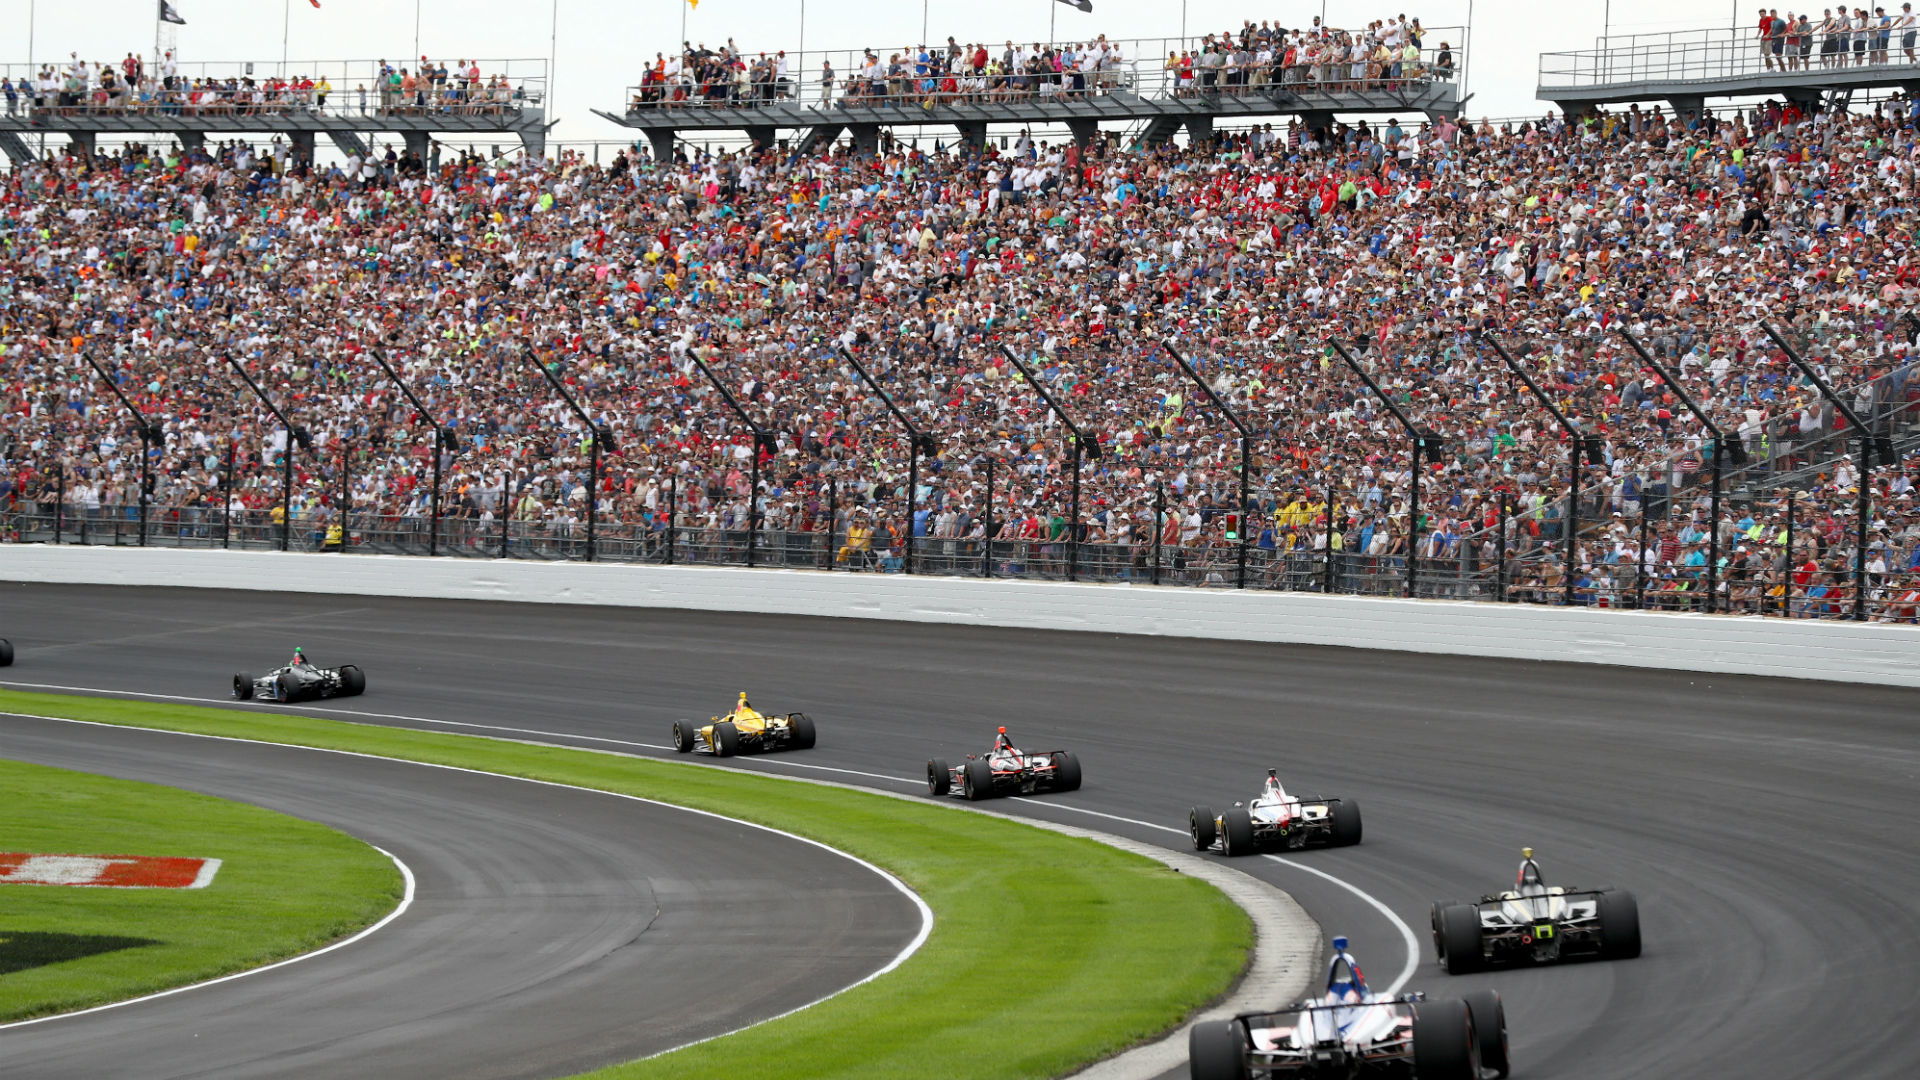 The Penske Corporation, which already owns a team in the IndyCar series, has completed the purchase of the competition.